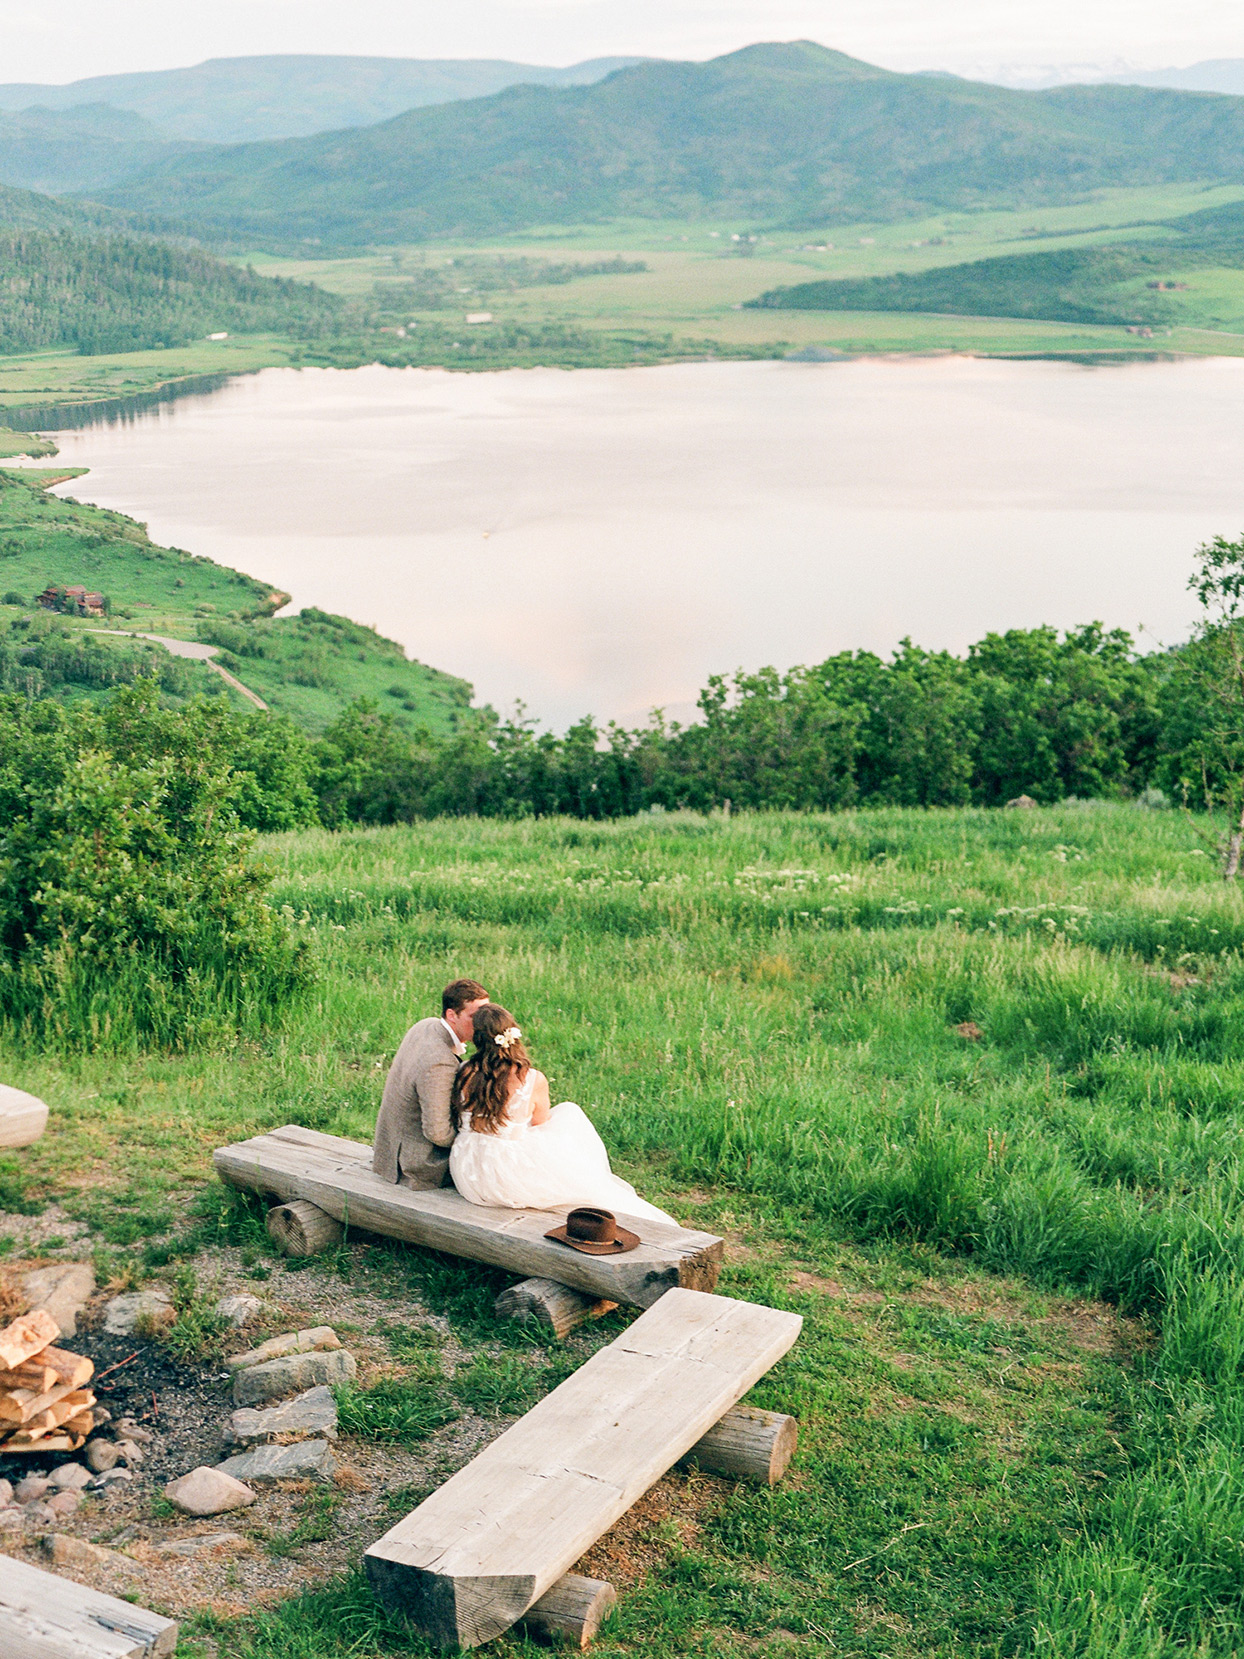 logan conor wedding couple sitting on bench overlooking mountains